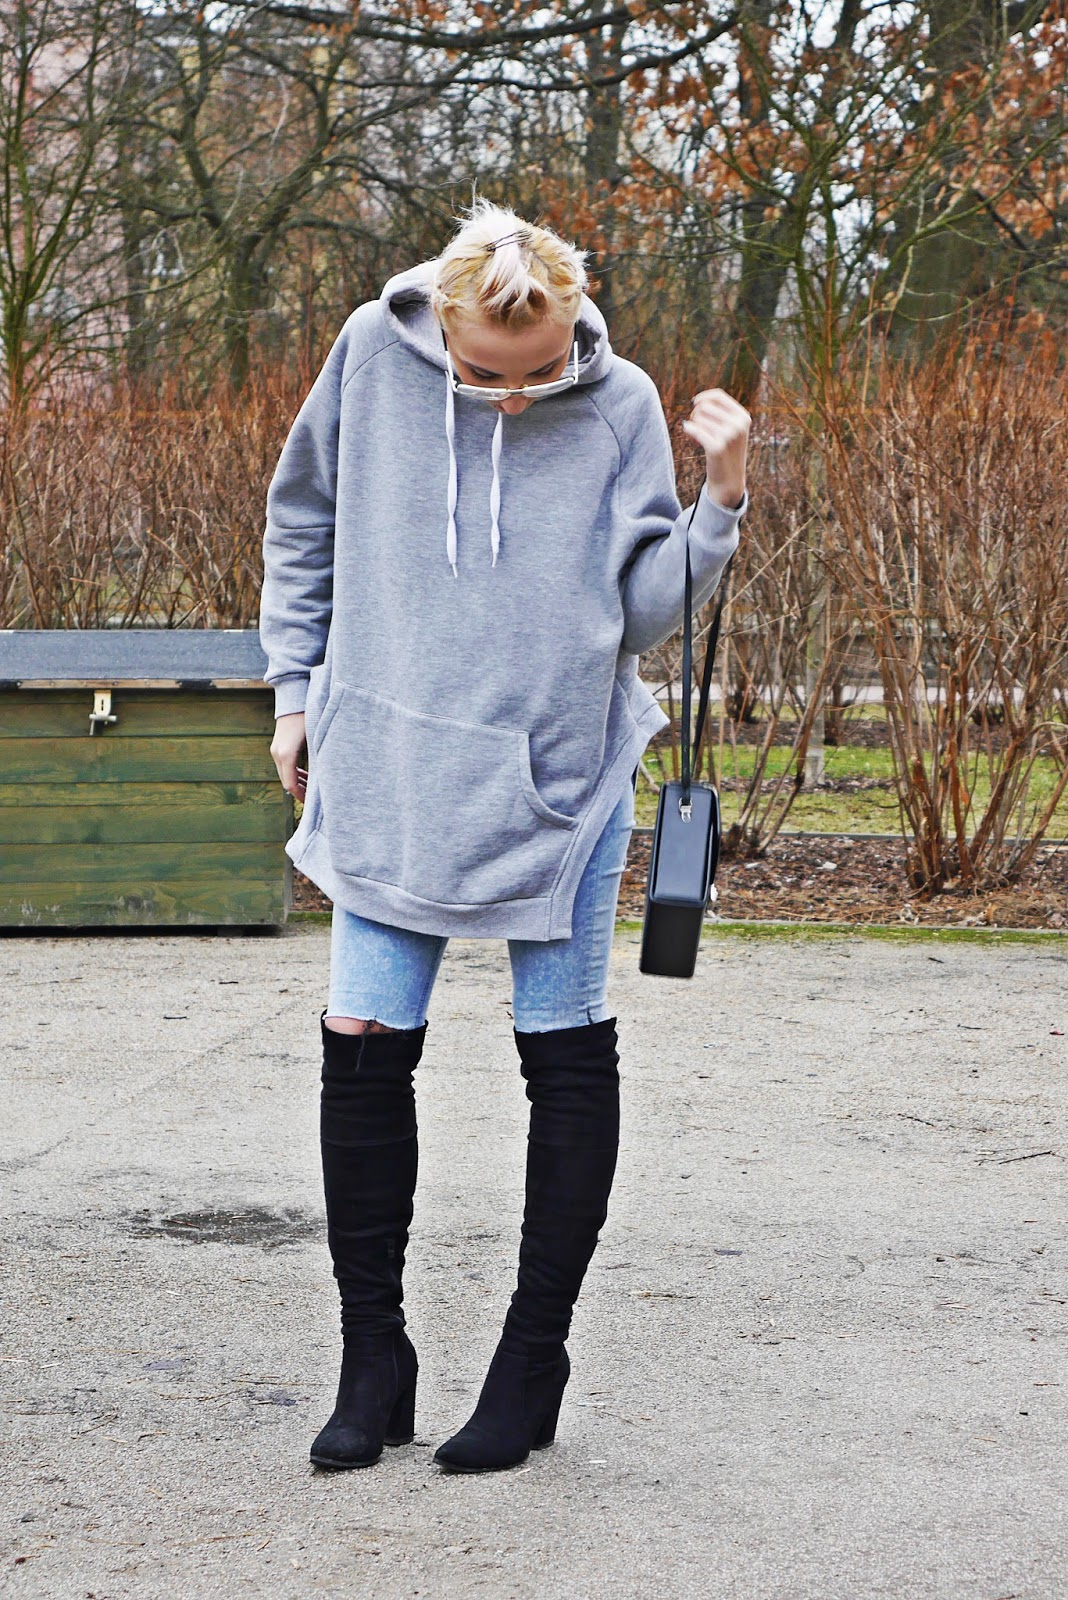 gray_hoodies_blue_jeans_black_boots_high_knee_look_karyn_020317e